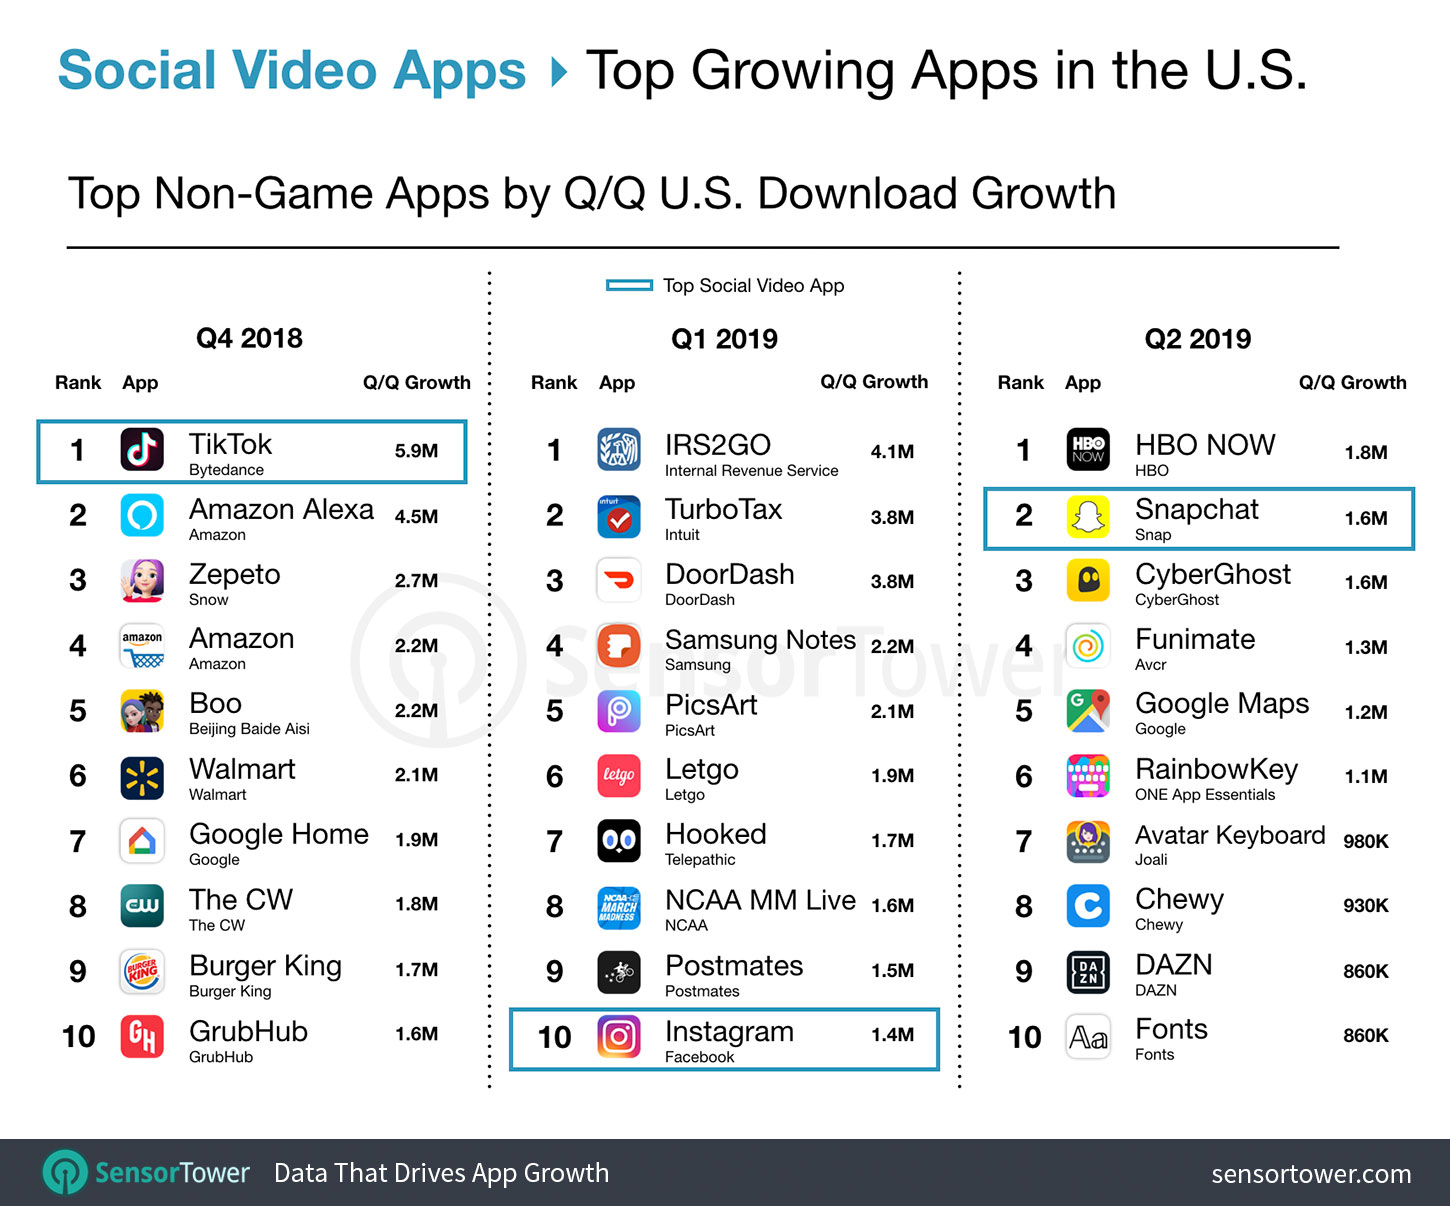 The State of Social Video Apps in the U.S. for Q2 2019